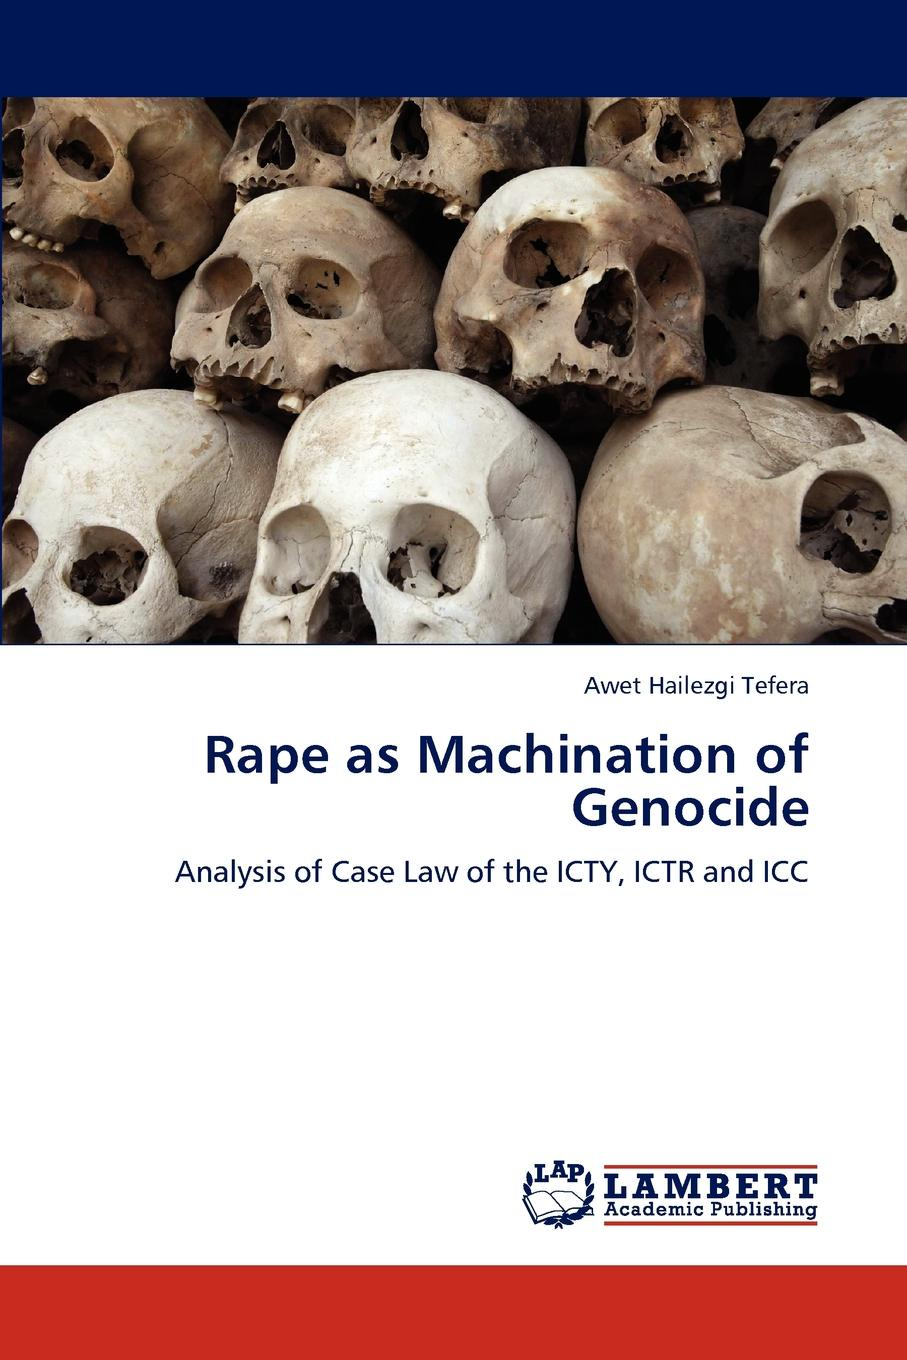 Awet Hailezgi Tefera Rape as Machination of Genocide недорго, оригинальная цена